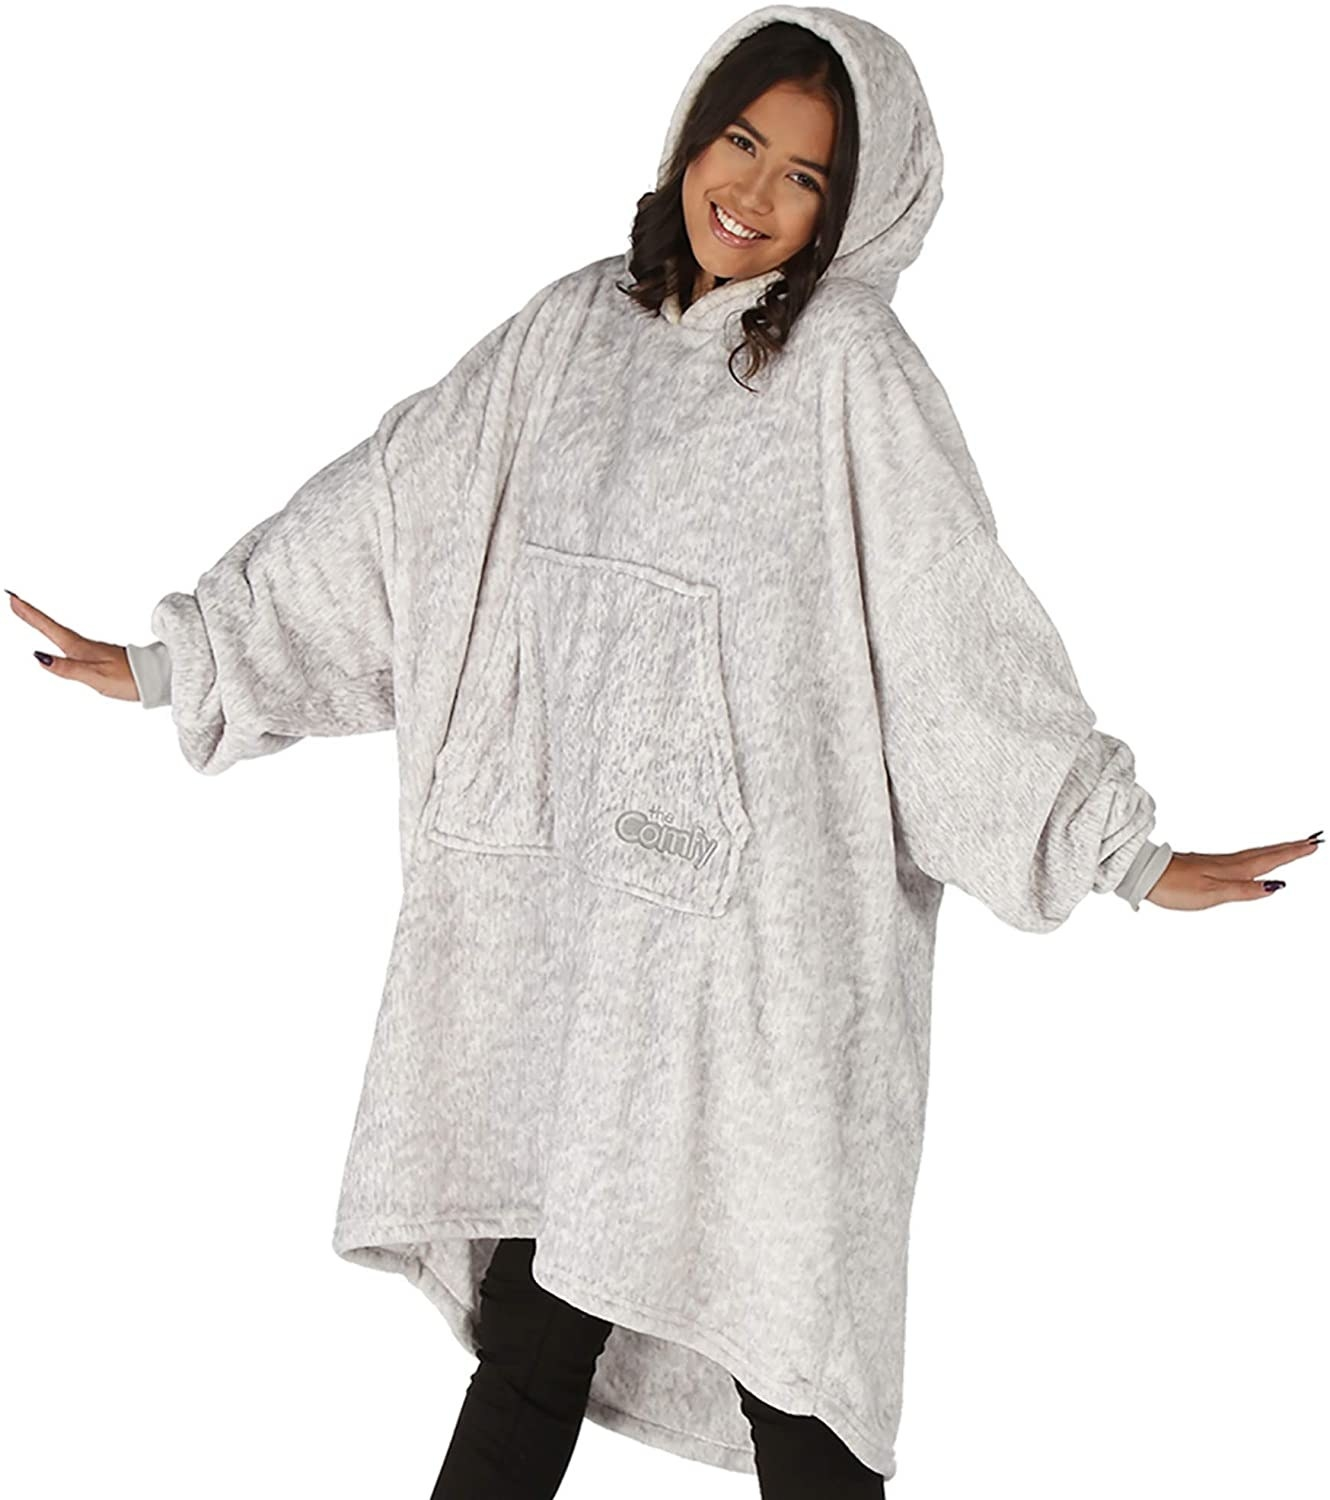 A person wearing an oversized hoodie